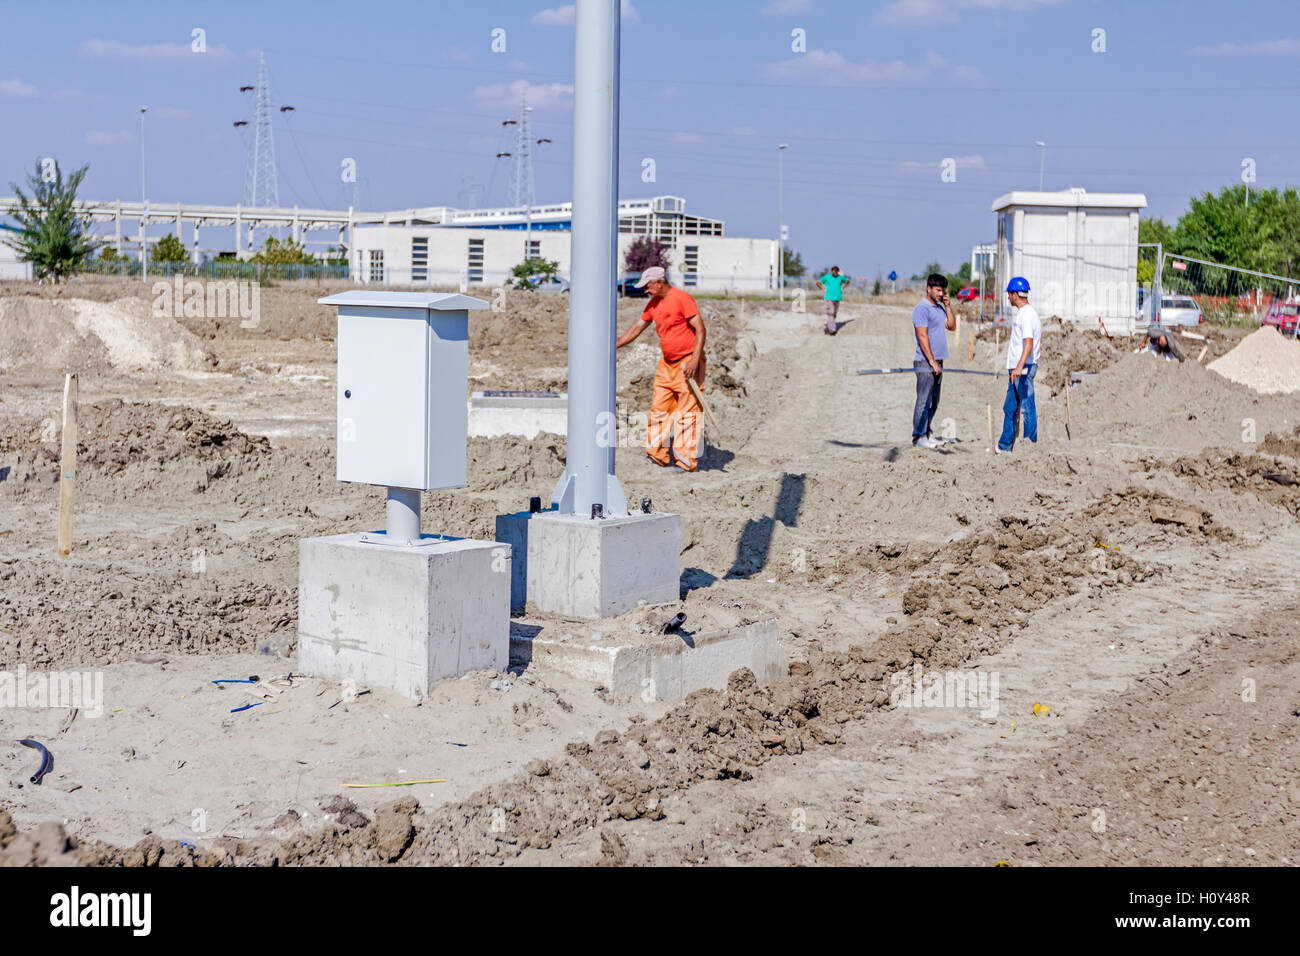 New small distribution fuse box on construction site next to the pole base. Stock Photo